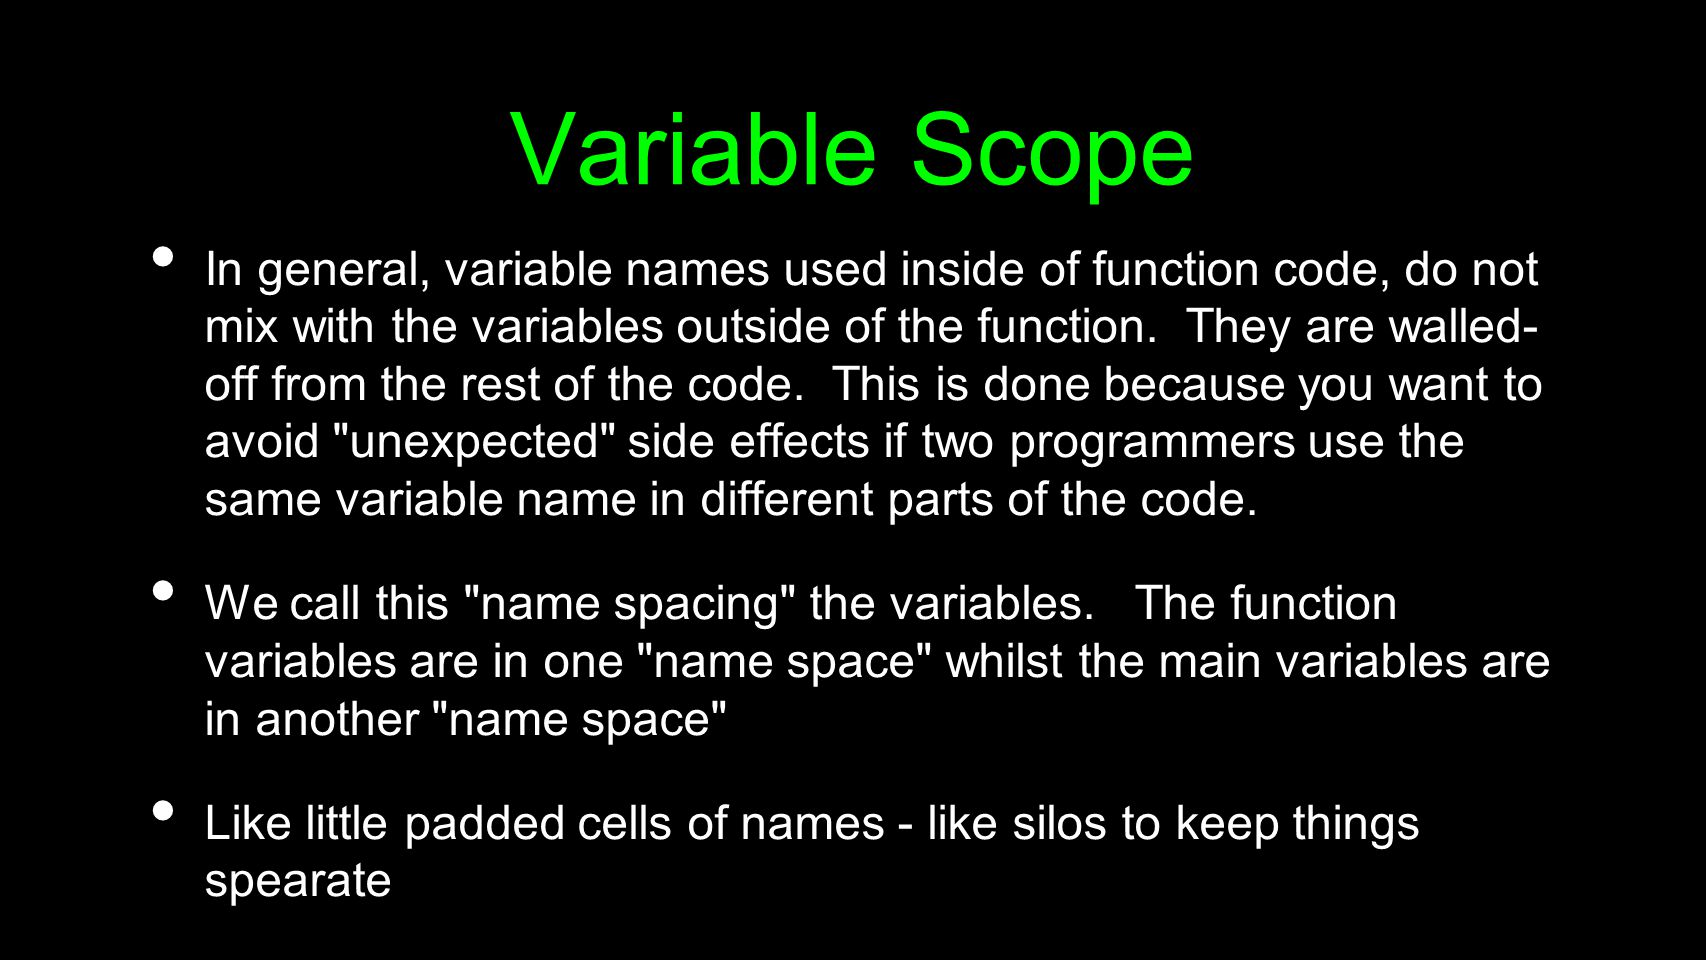 Variable Scope